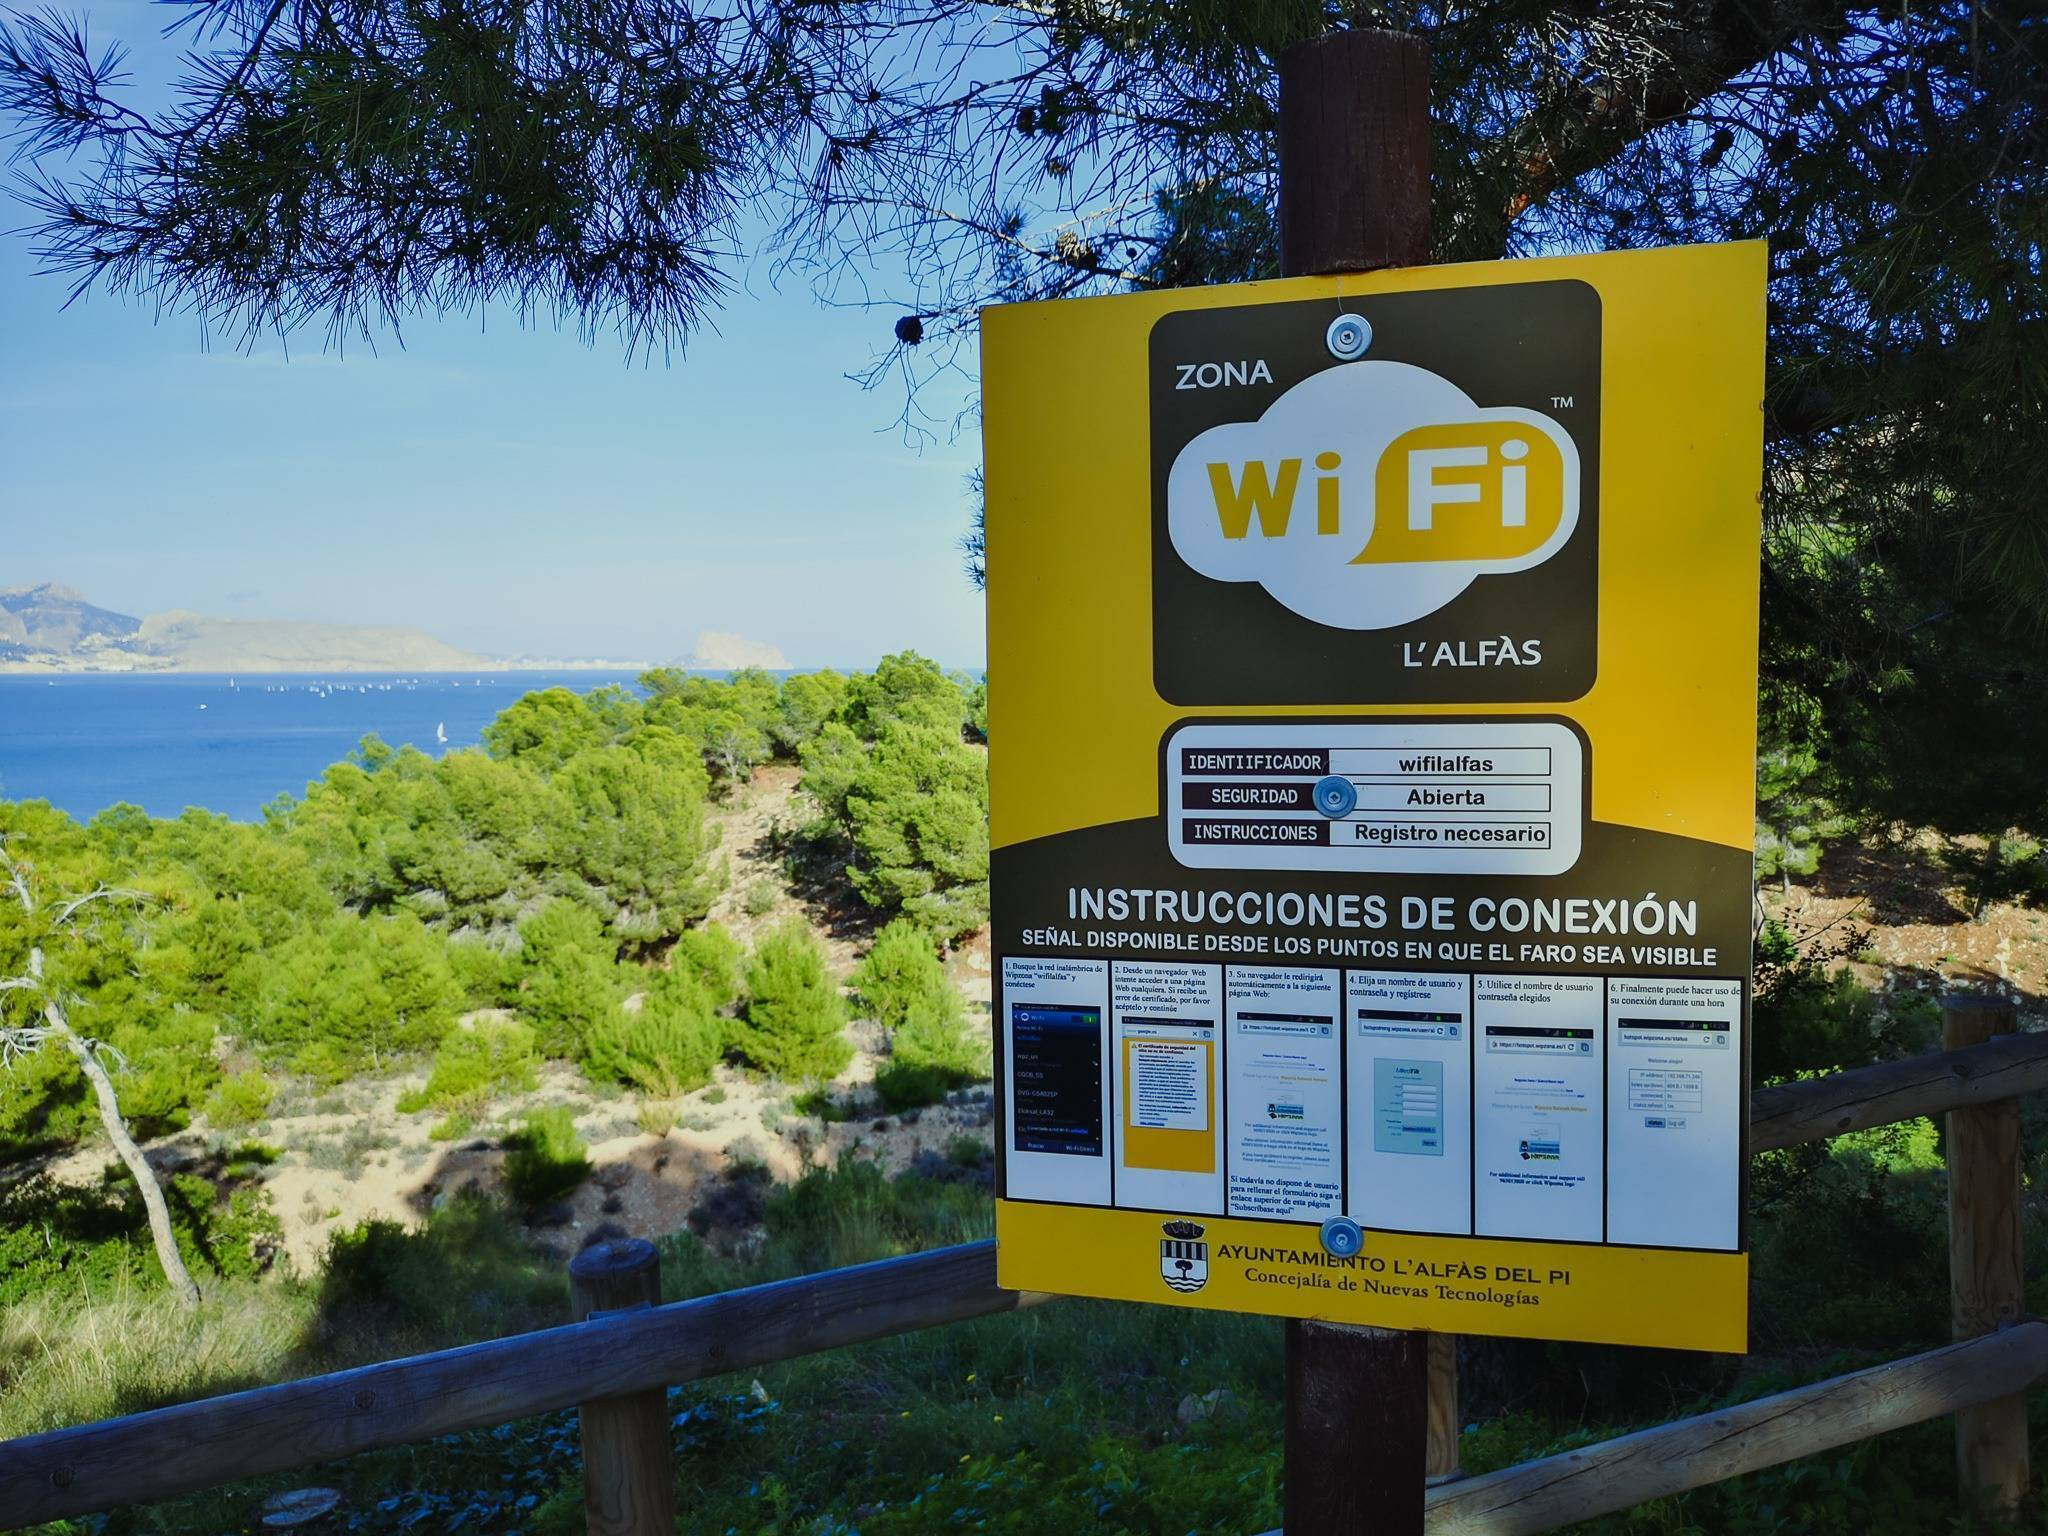 To my surprise, the area of the park even includes free wi-fi. Ironically, the routes, which need a connection for navigation the least, are the only ones to have it. Photo by Alis Monte [CC BY-SA 4.0], via Connecting the Dots